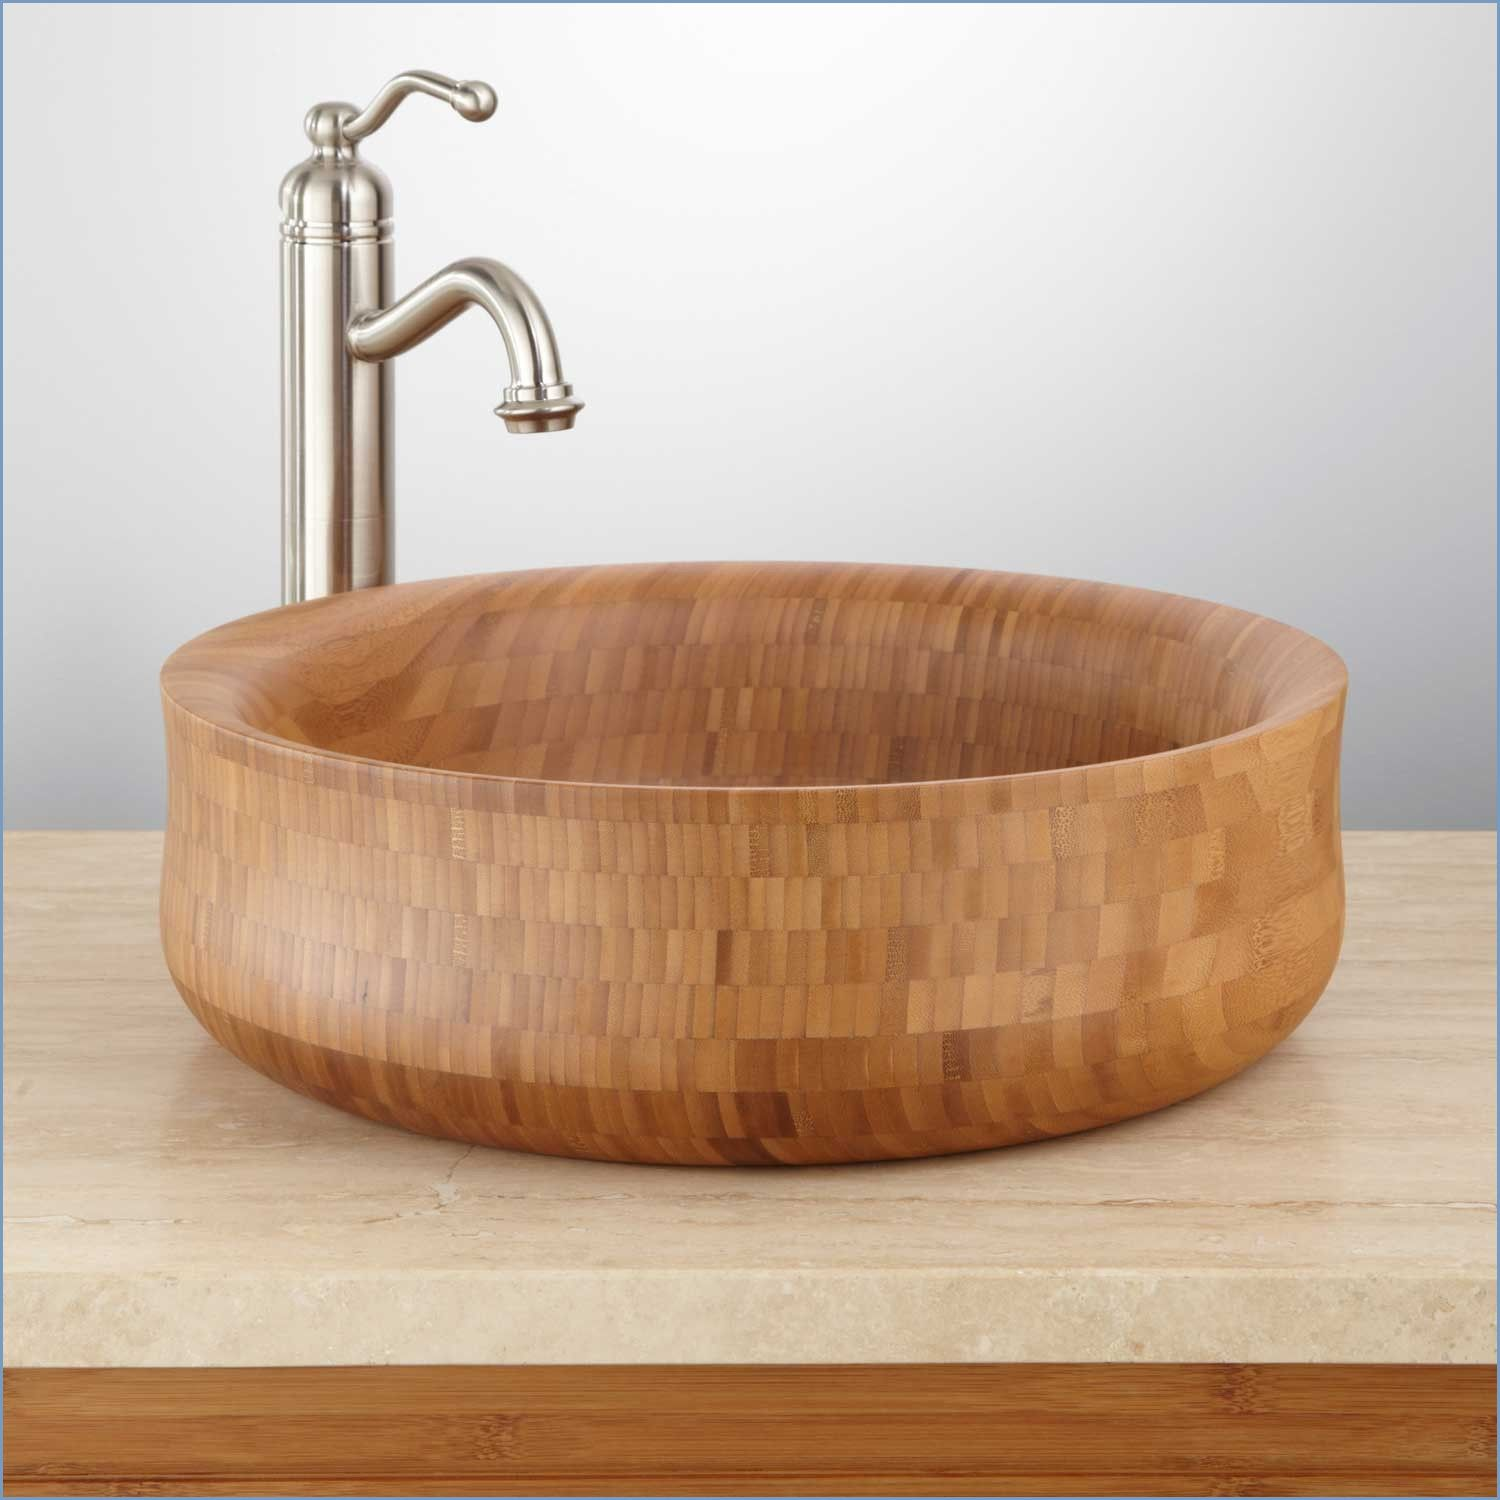 bamboo-vessel-sink-faucet-inspirational-home-bathroom-calhan-round ...